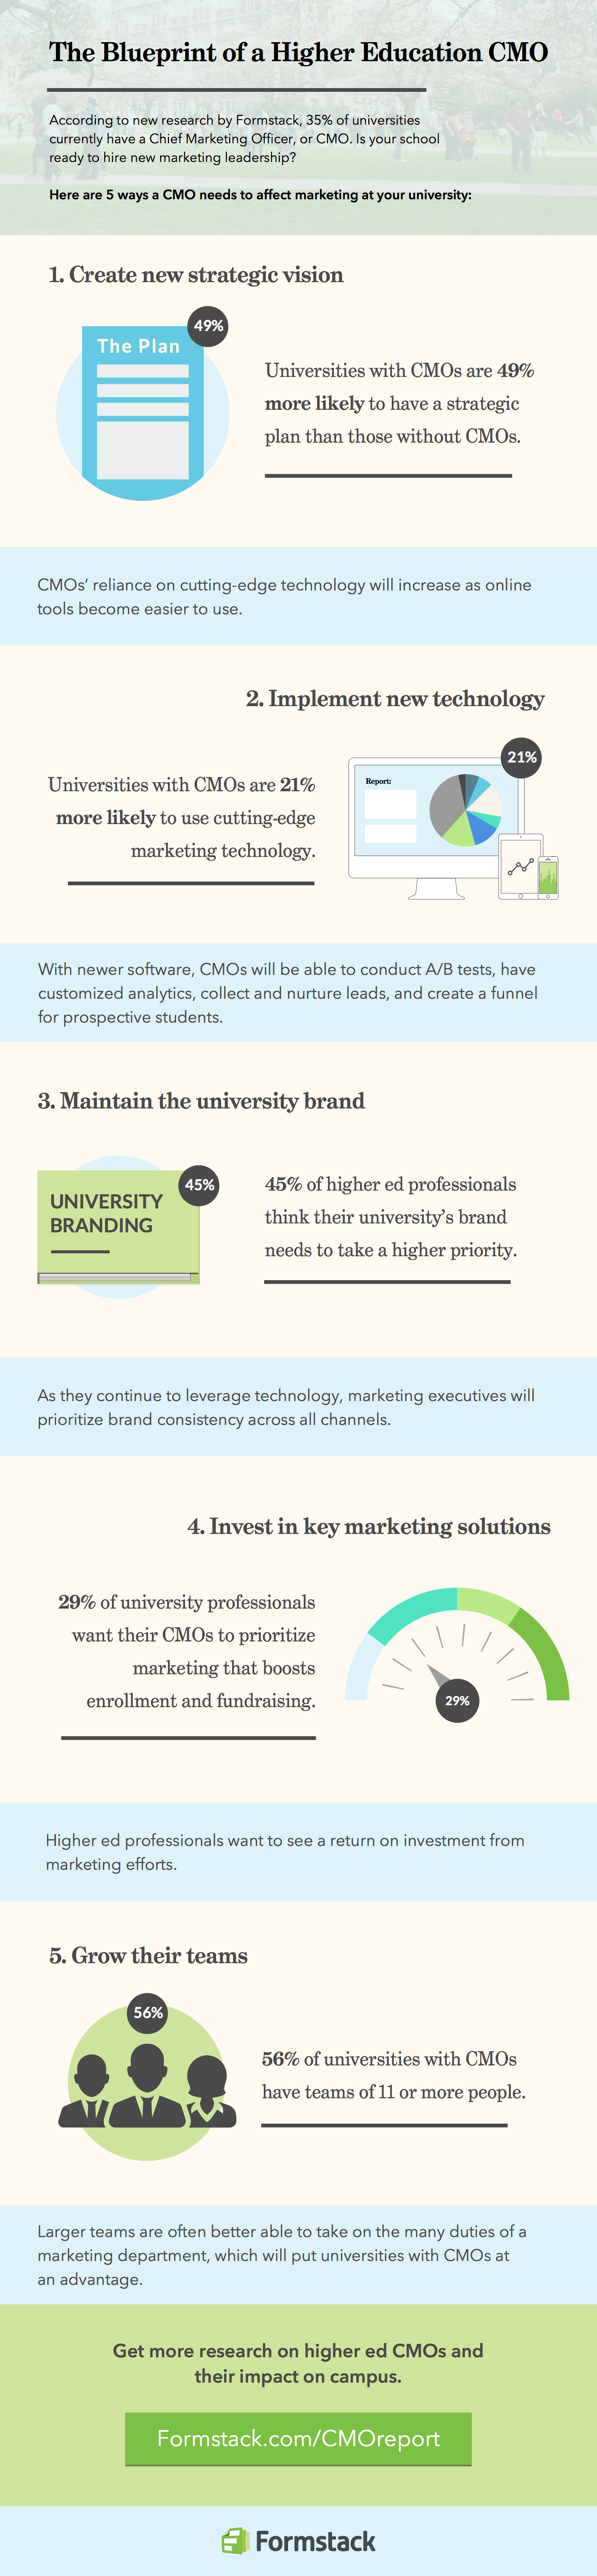 Blueprint of a Higher Education CMO